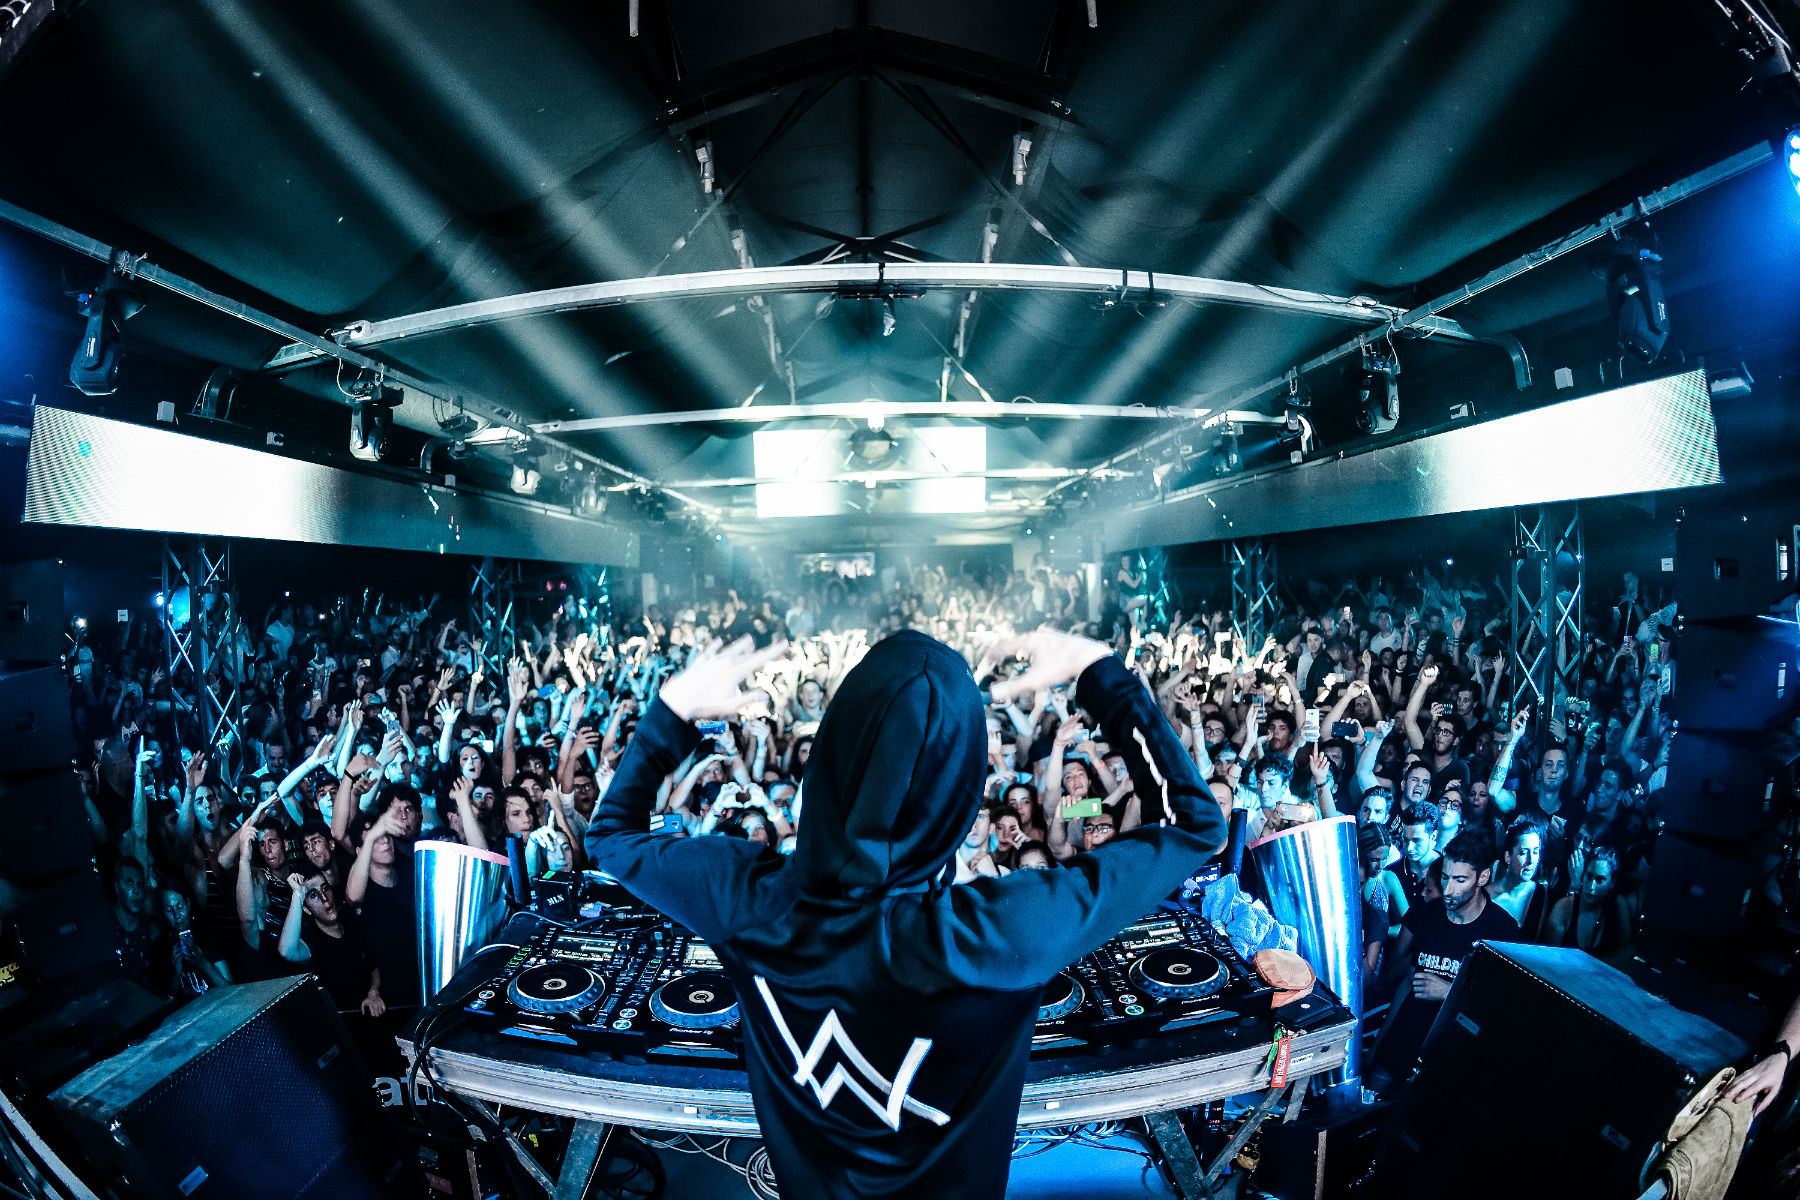 evento friuli alan walker  kings jesolo 14.08.18 credits biagio camiggio King's di Jesolo. Un'ottima estate.